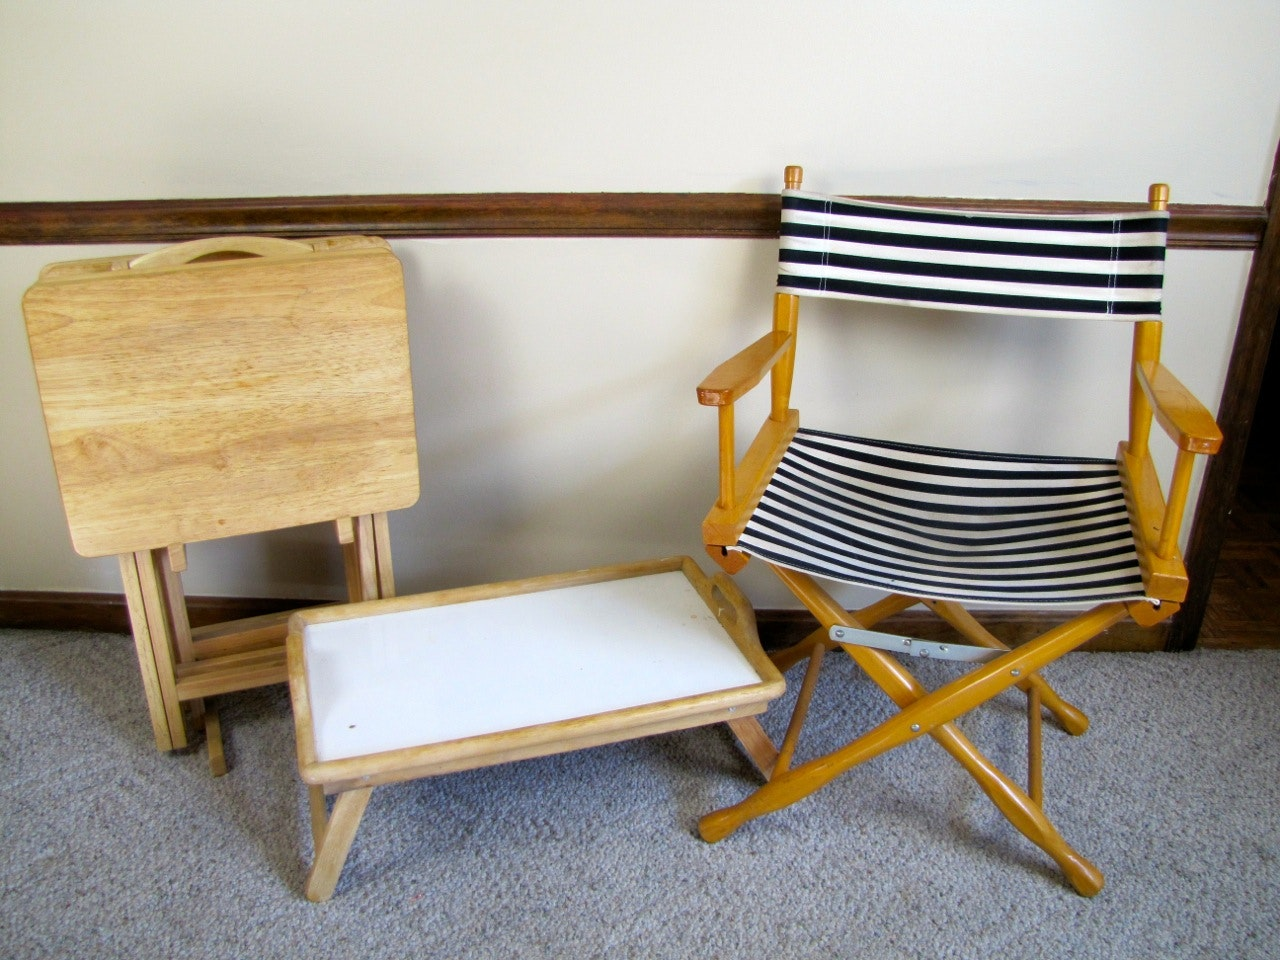 Wood Tray Table Set With Stand And Folding Director Chair ...